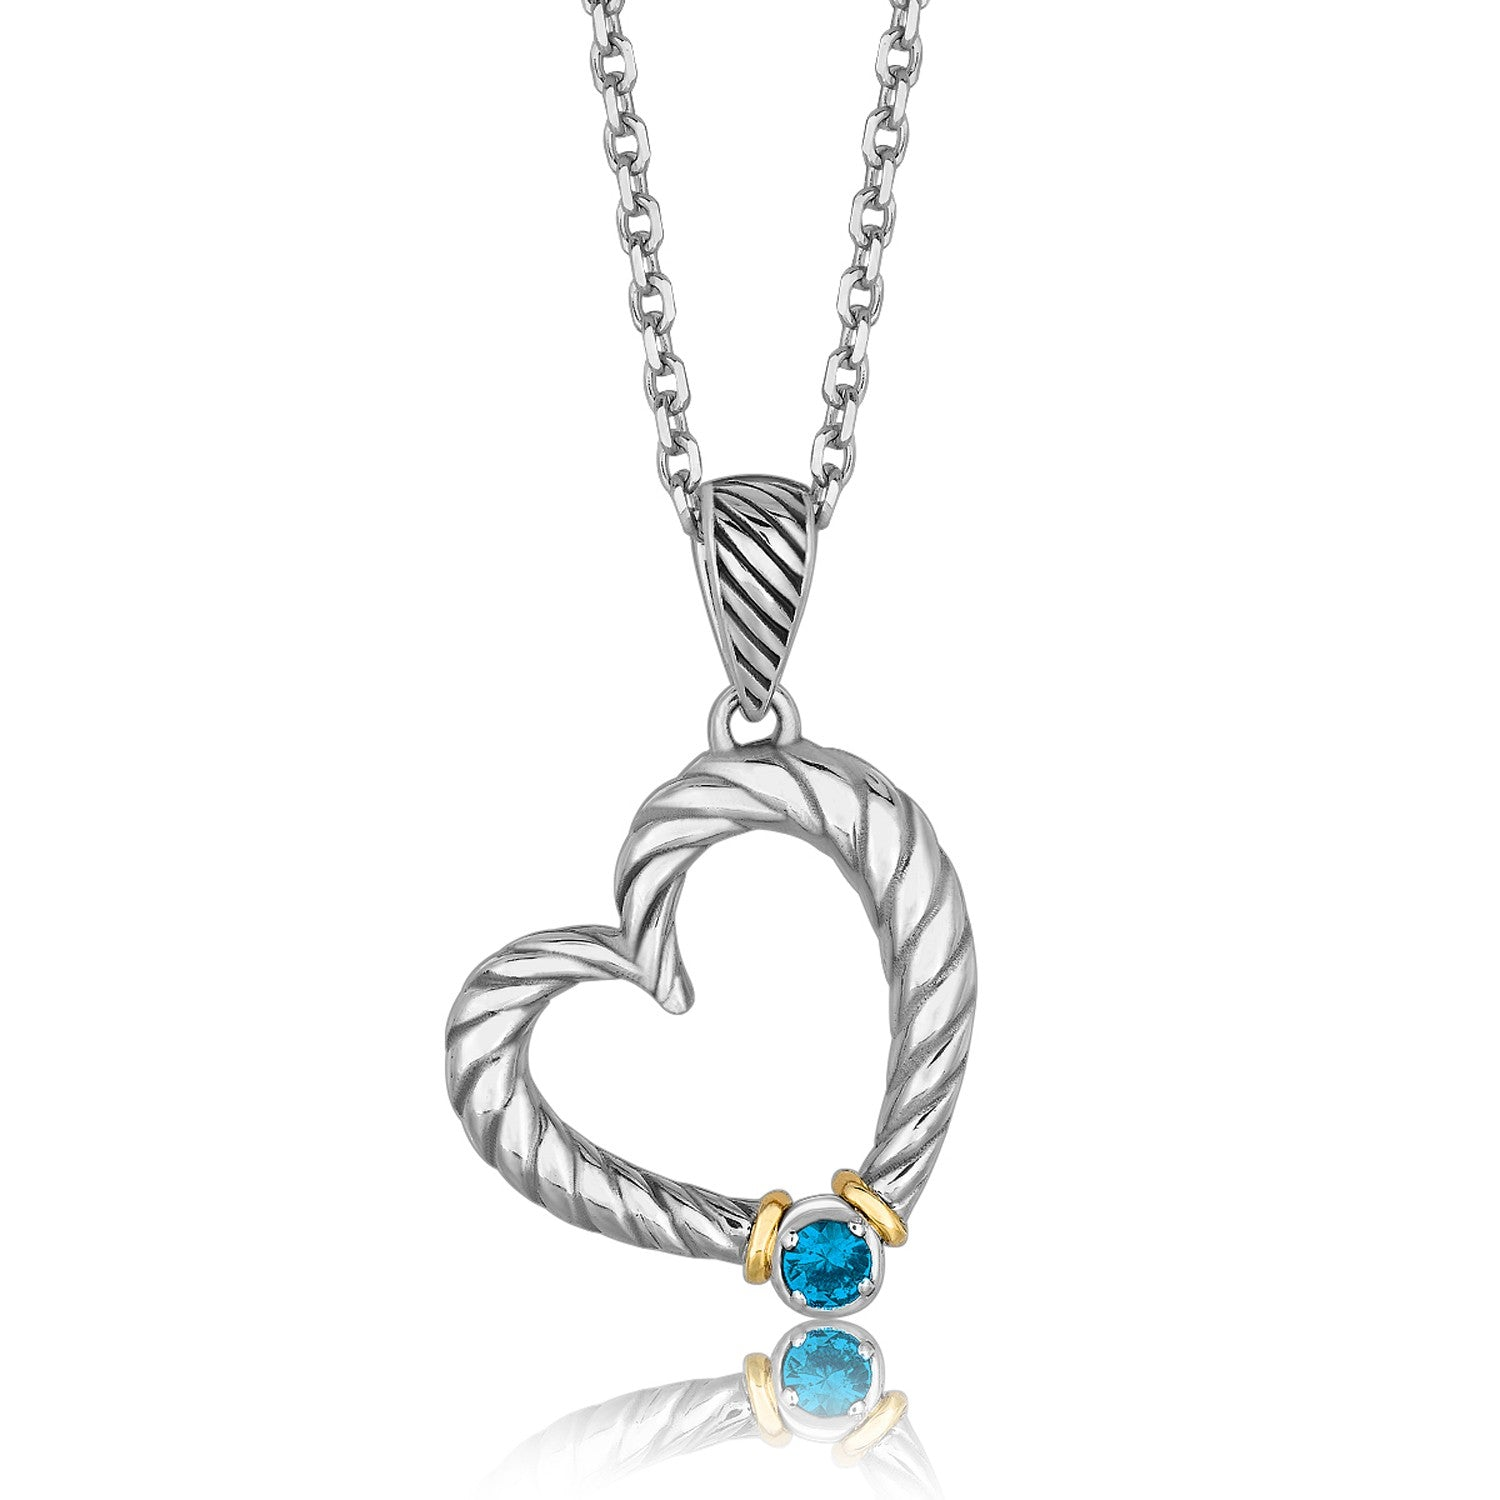 18K Yellow Gold and Sterling Silver Heart Style Pendant with a Blue Topaz